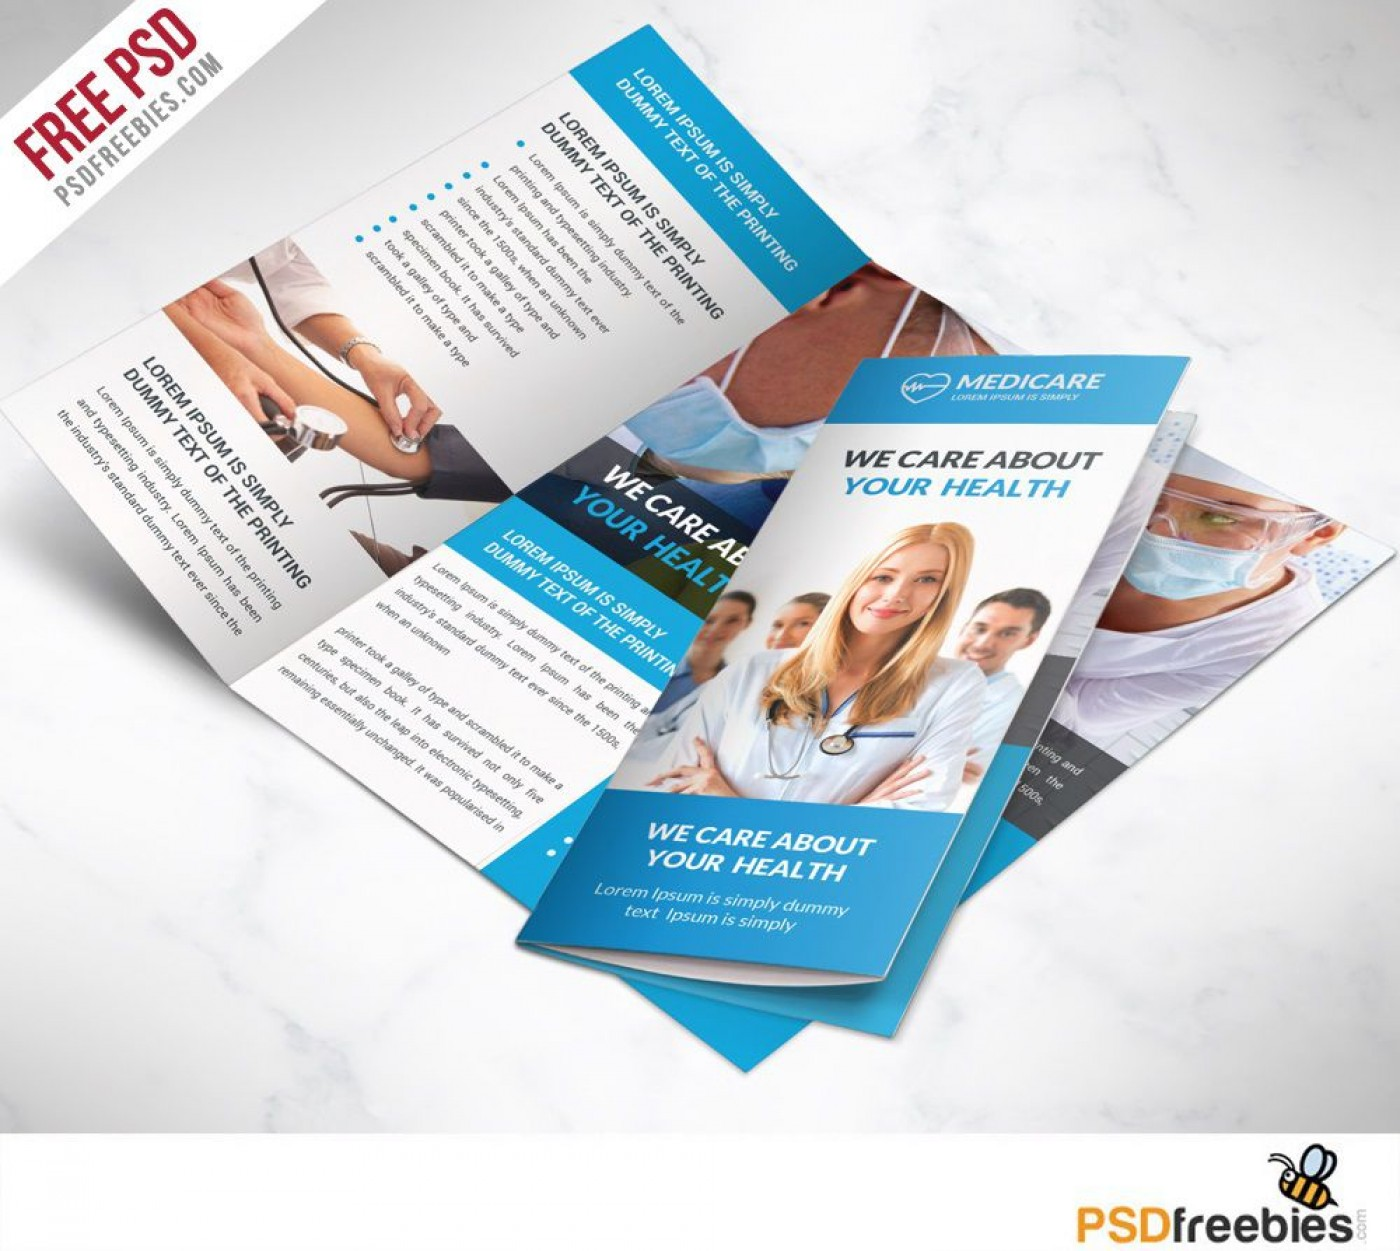 007 Shocking Brochure Template Photoshop Cs6 Free Download High Resolution 1400